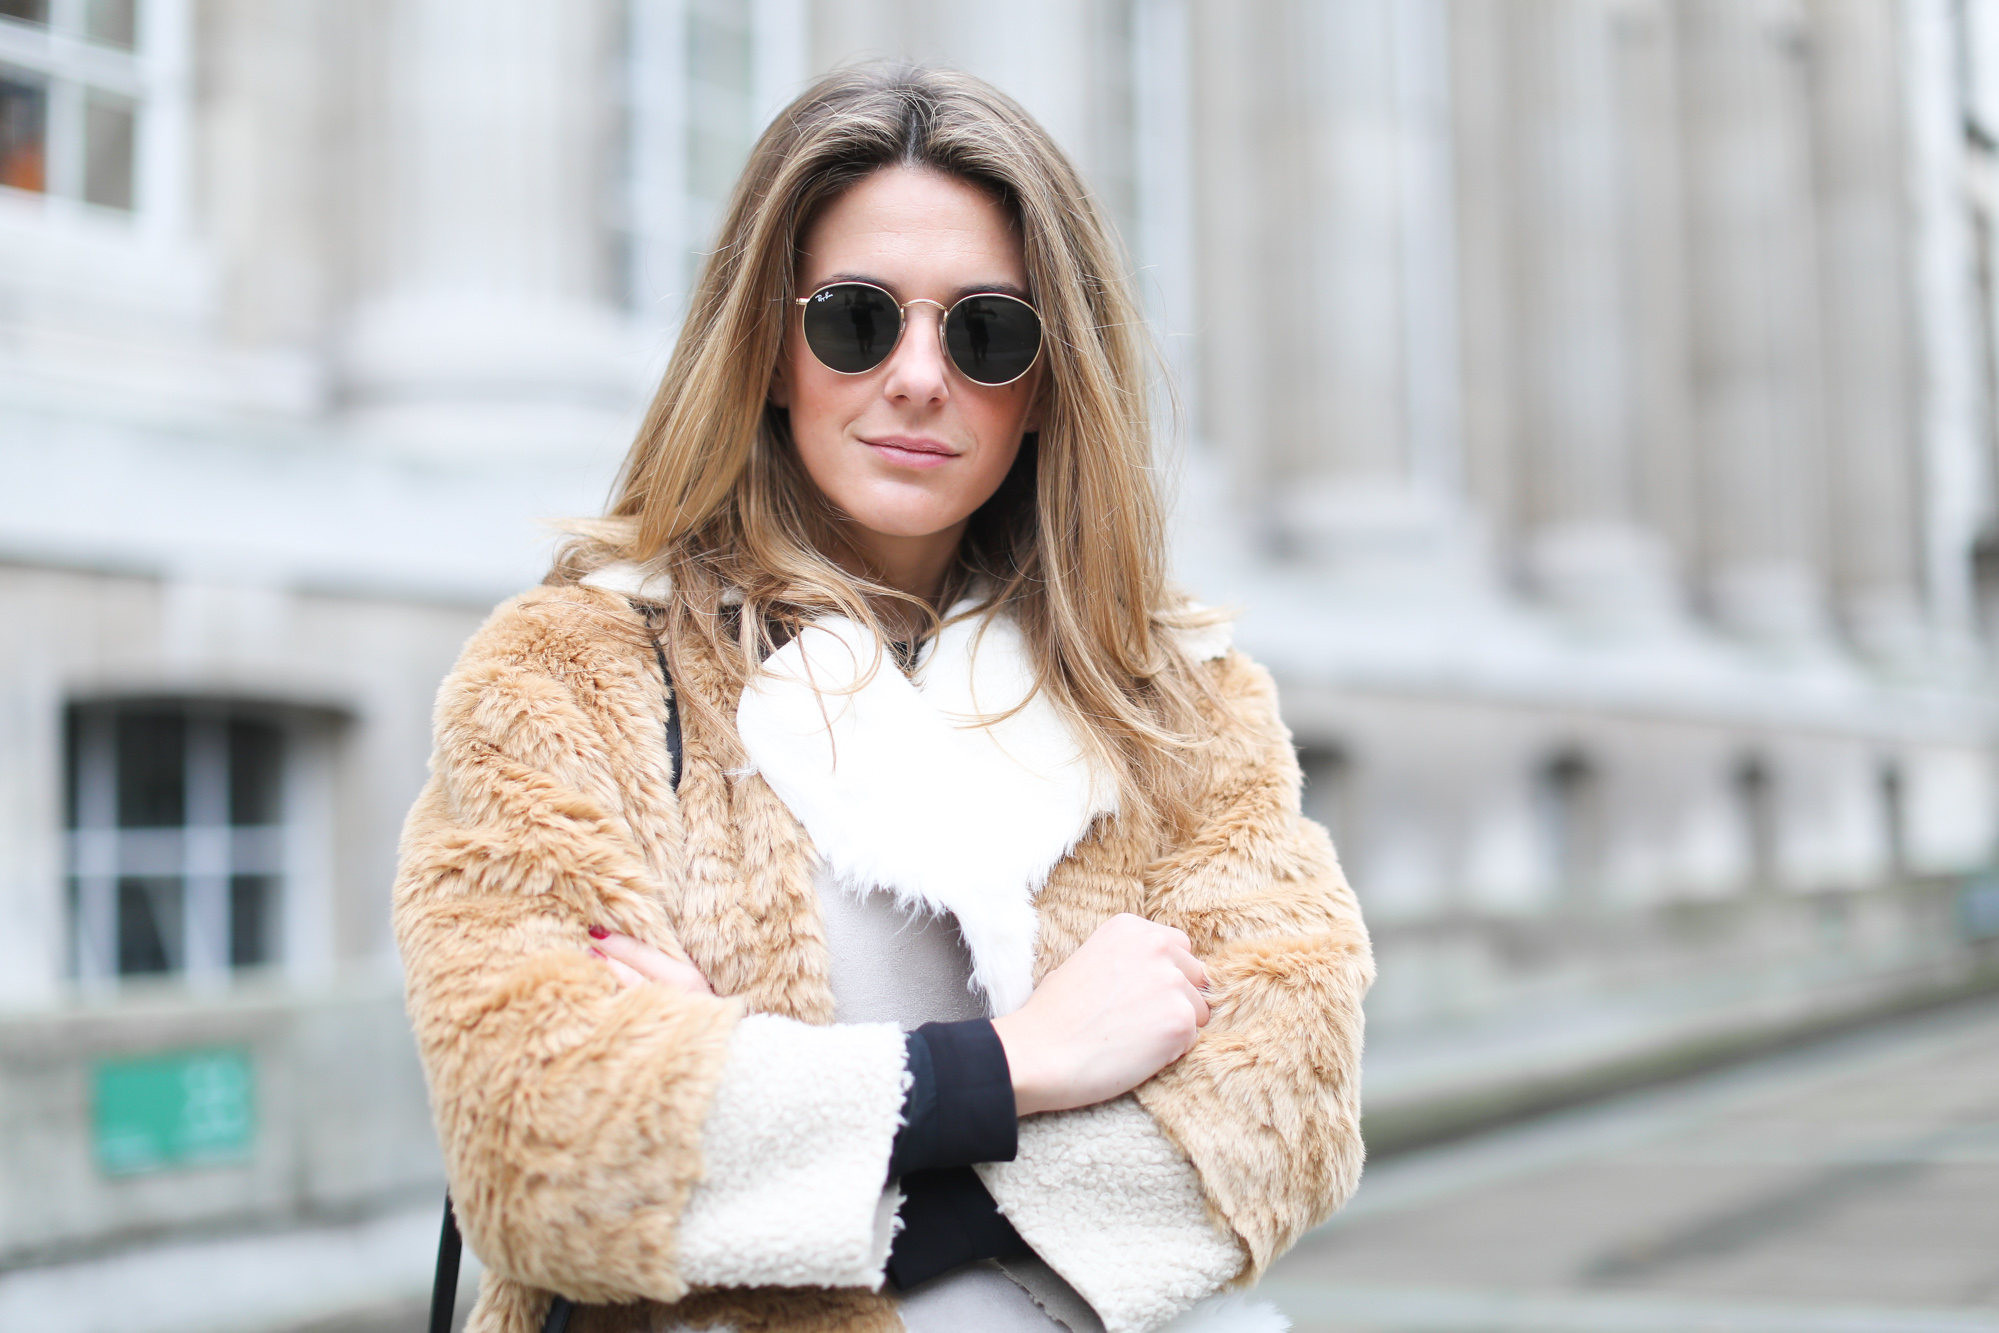 clochet_streestyle_london_asos_faux_fur_patchowork_coat_topshop_jamie_jeans-11